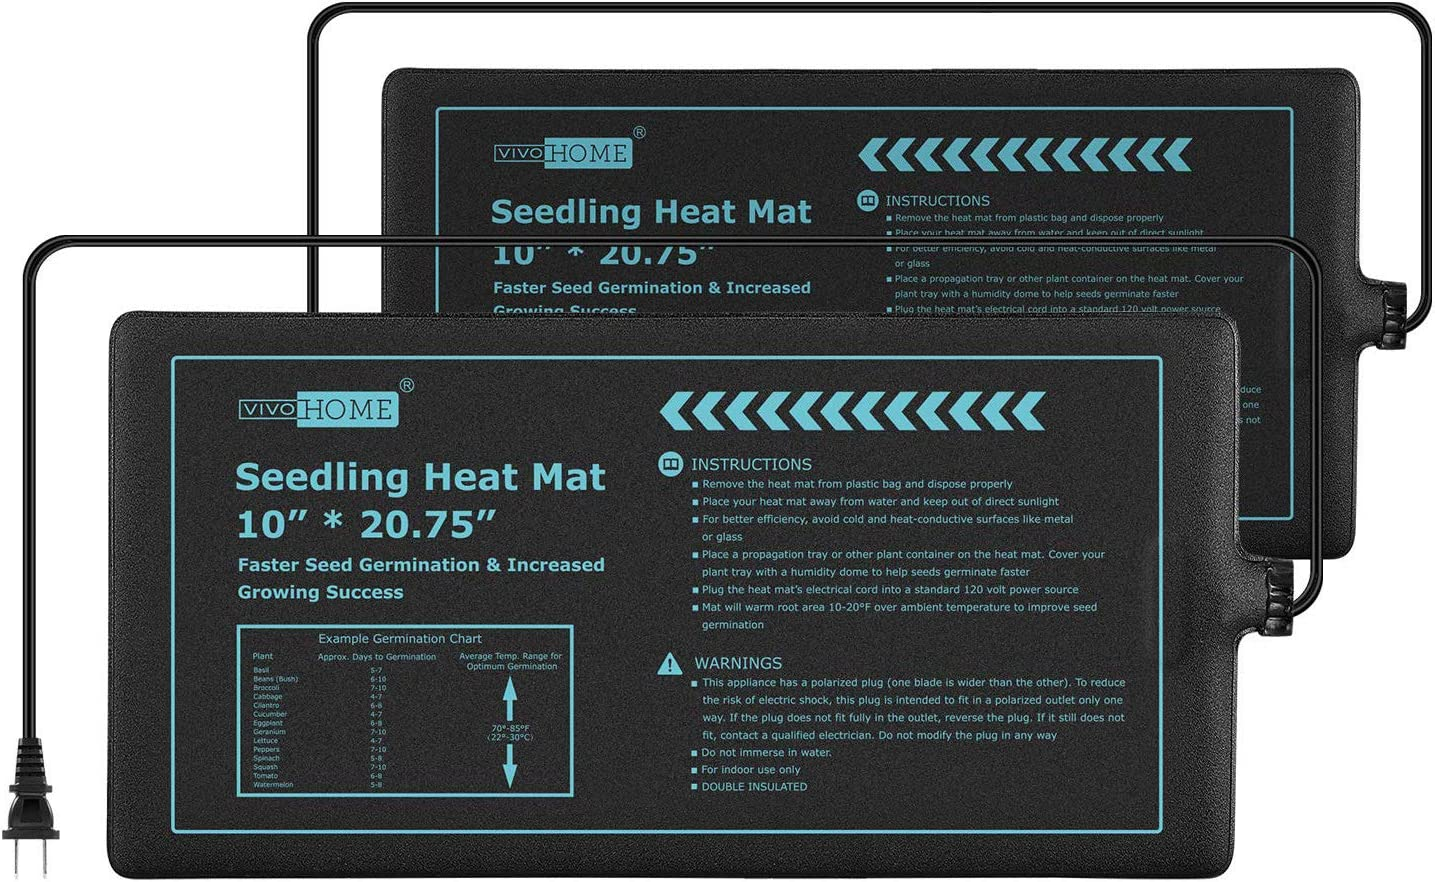 VIVOHOME Brand new 20W Fresno Mall Waterproof Seedling Heat Mats Starting Seed Pro for